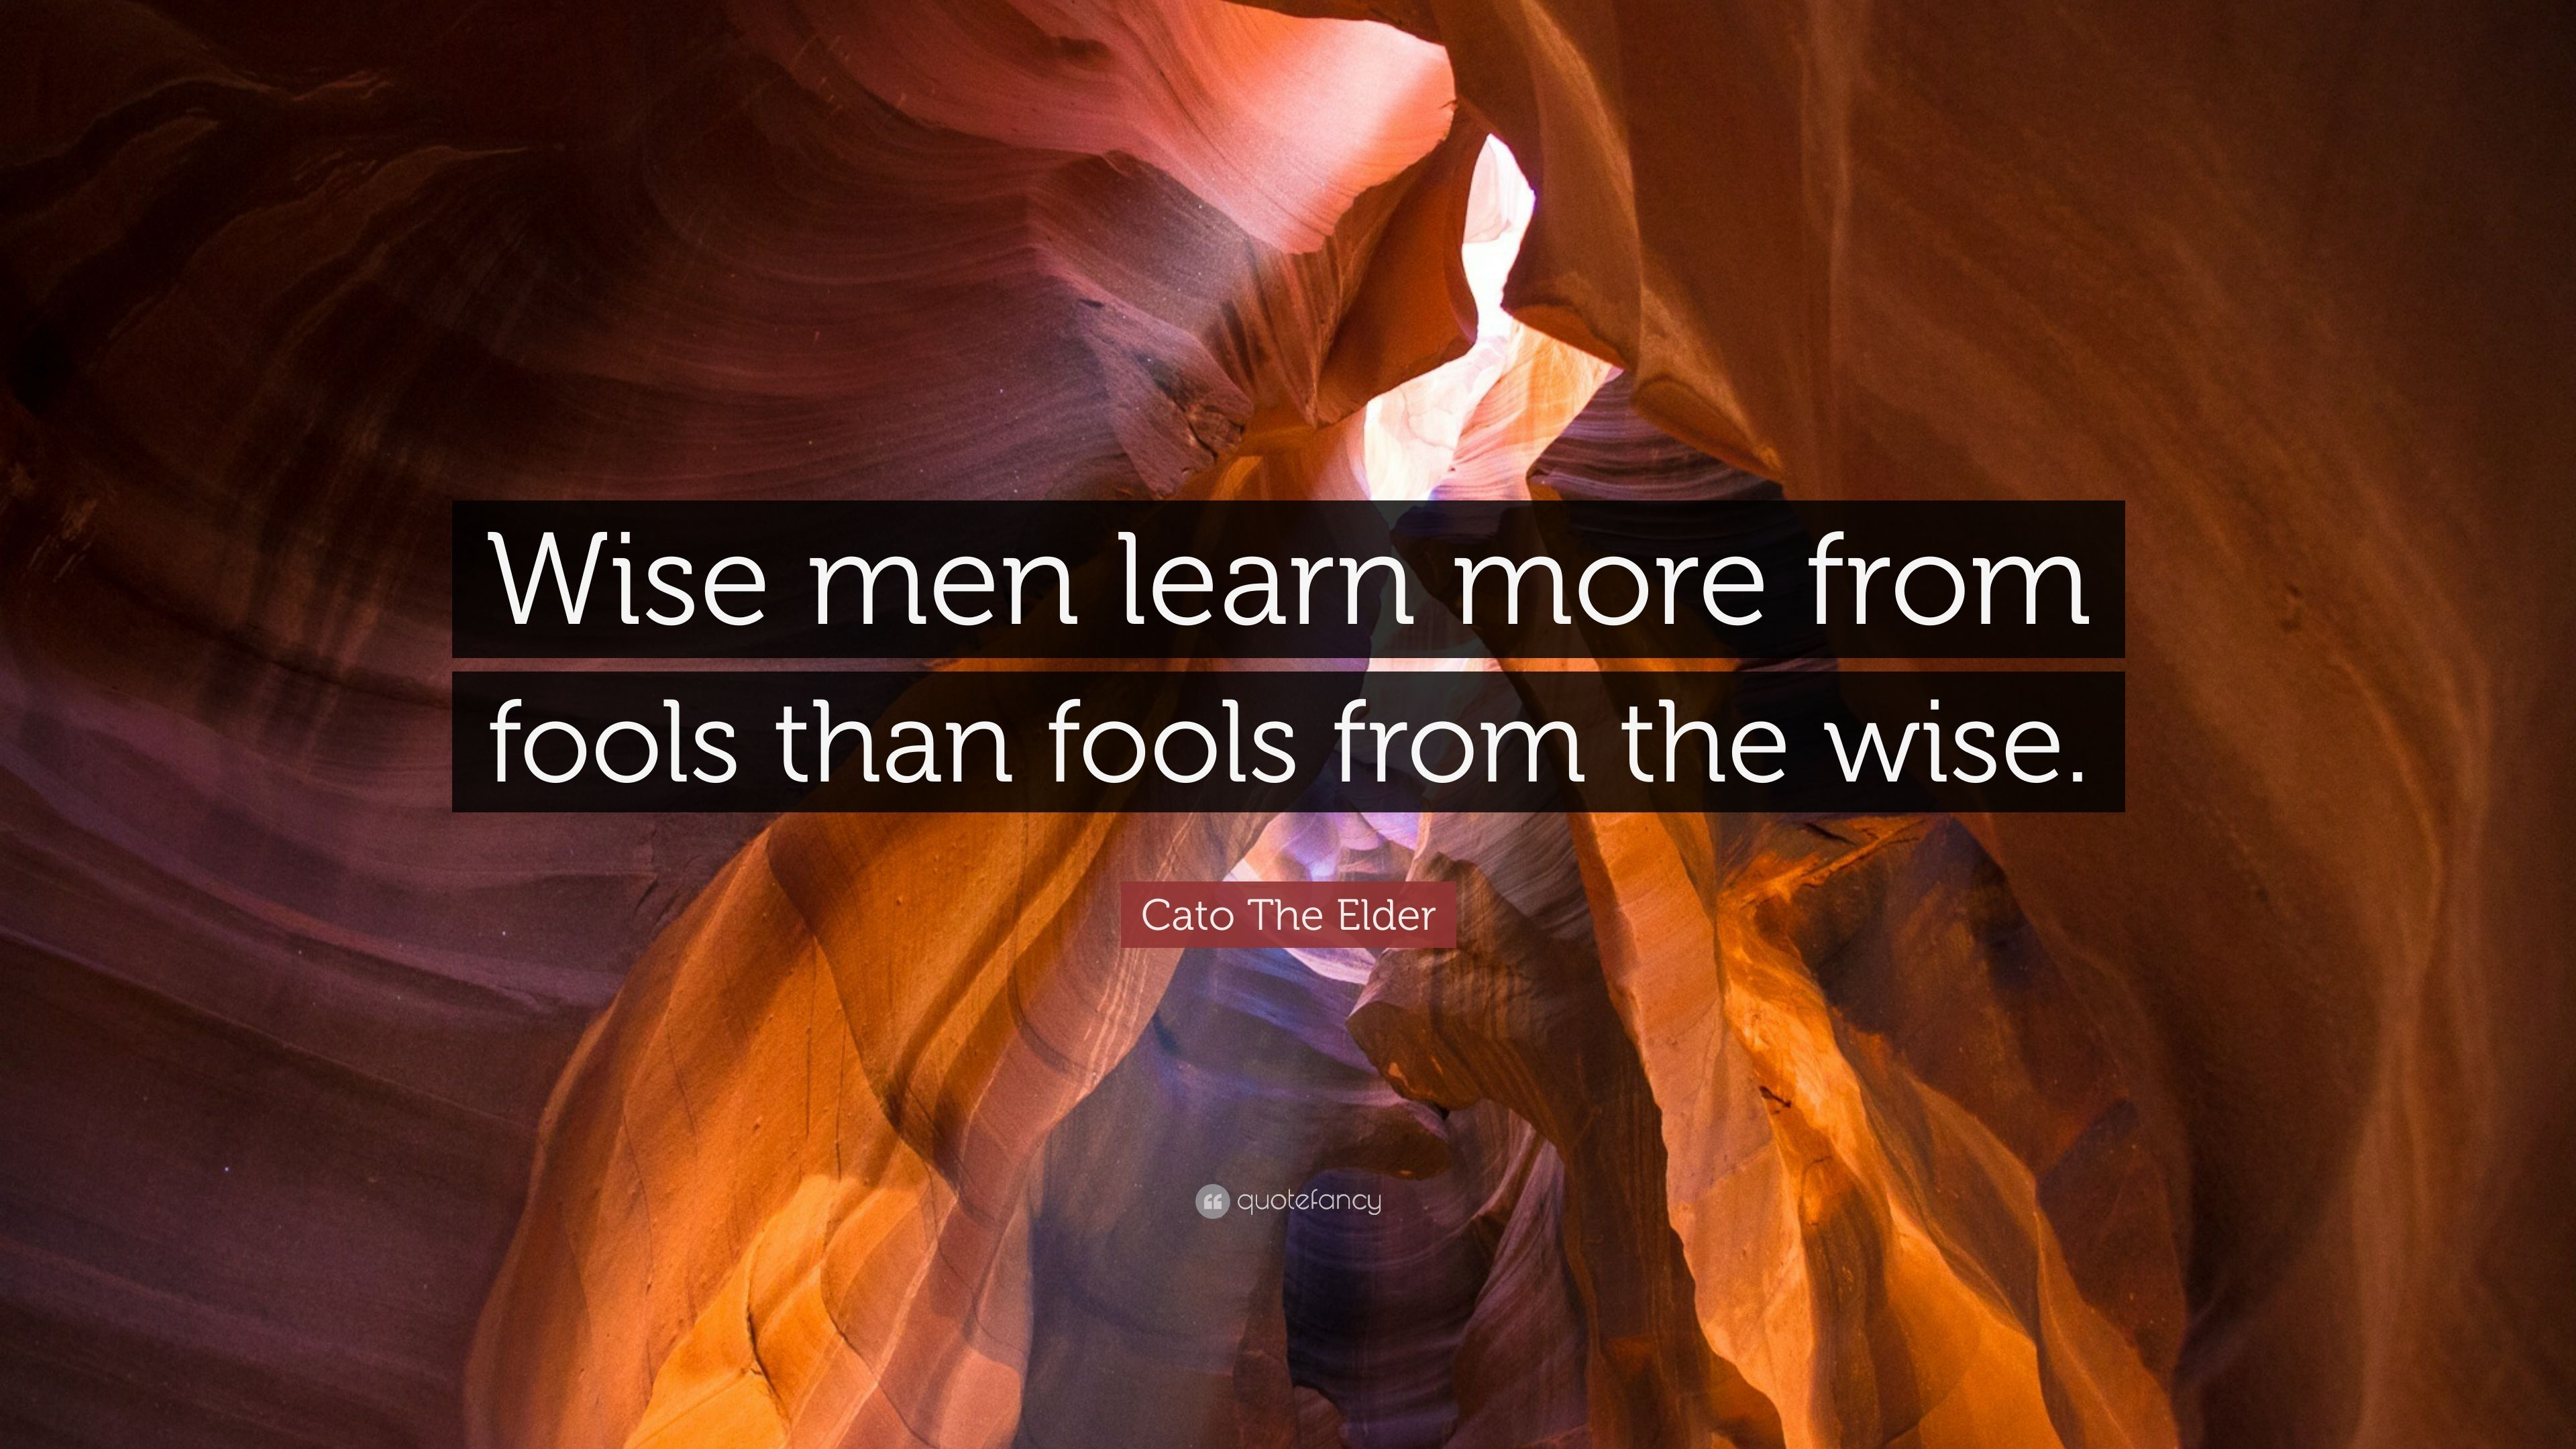 wise men learn more from fools